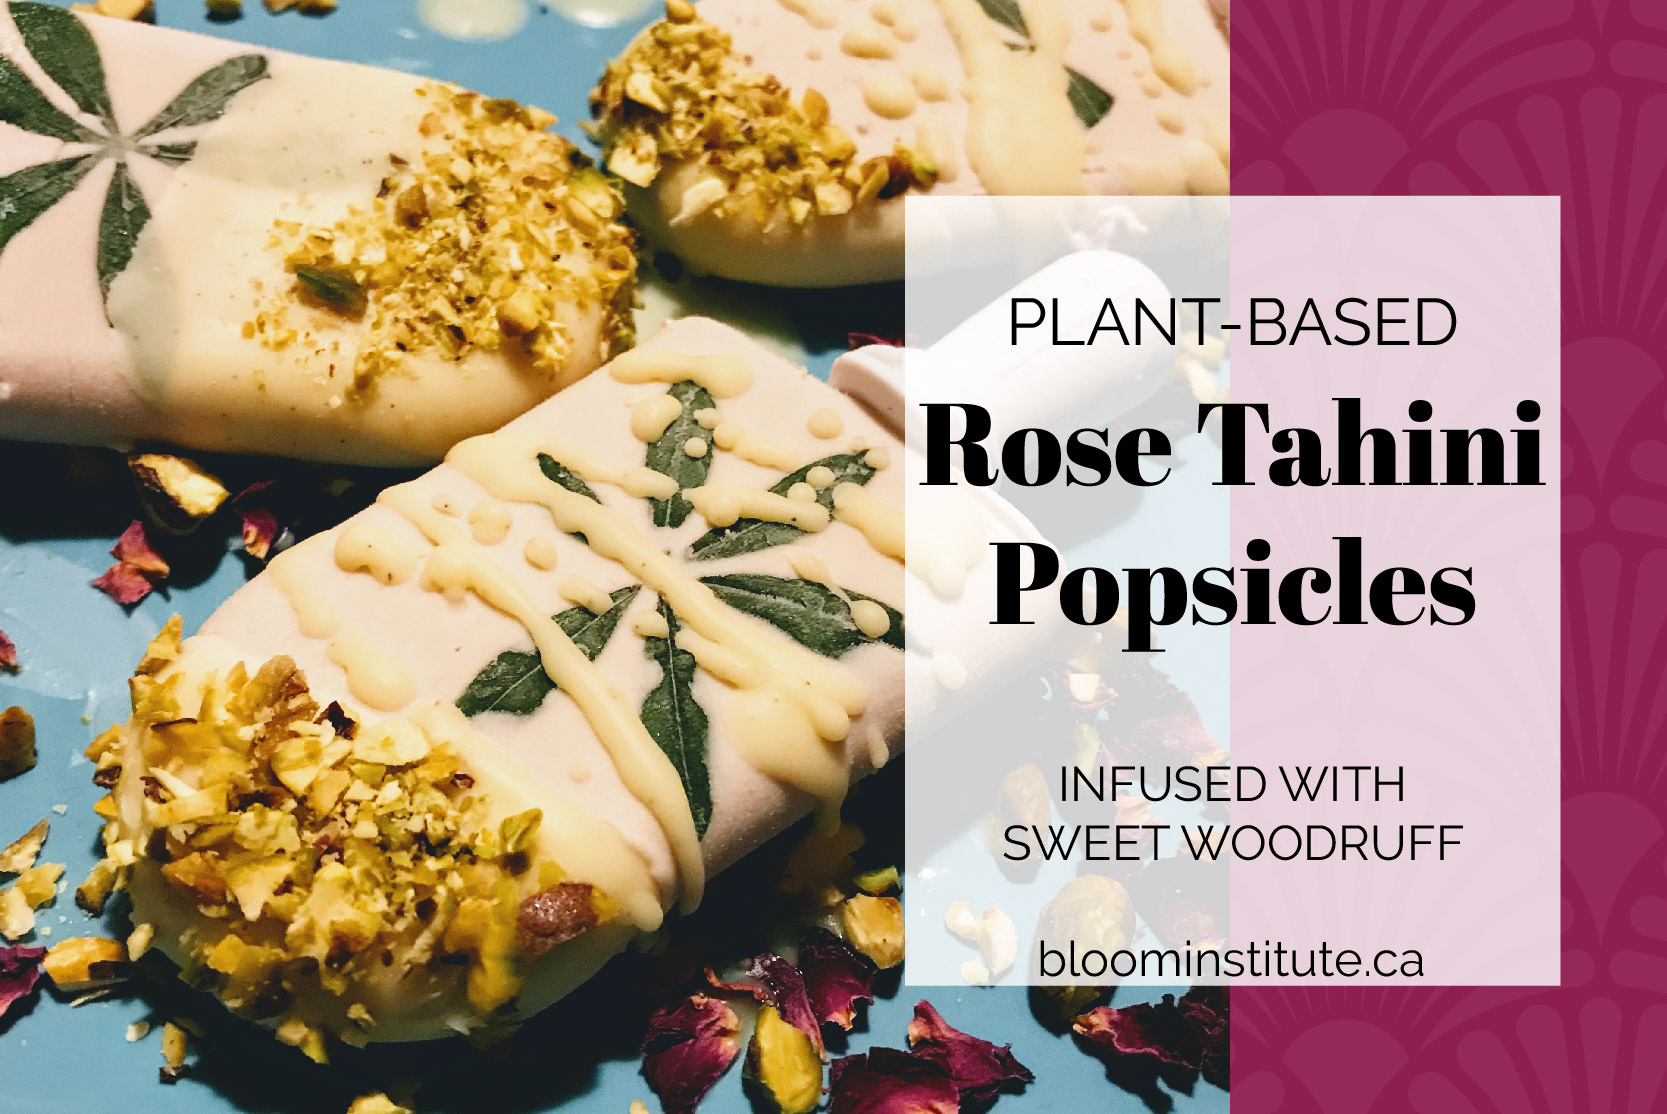 Rose Tahini Herbal Popsicles | bloominstitute.ca